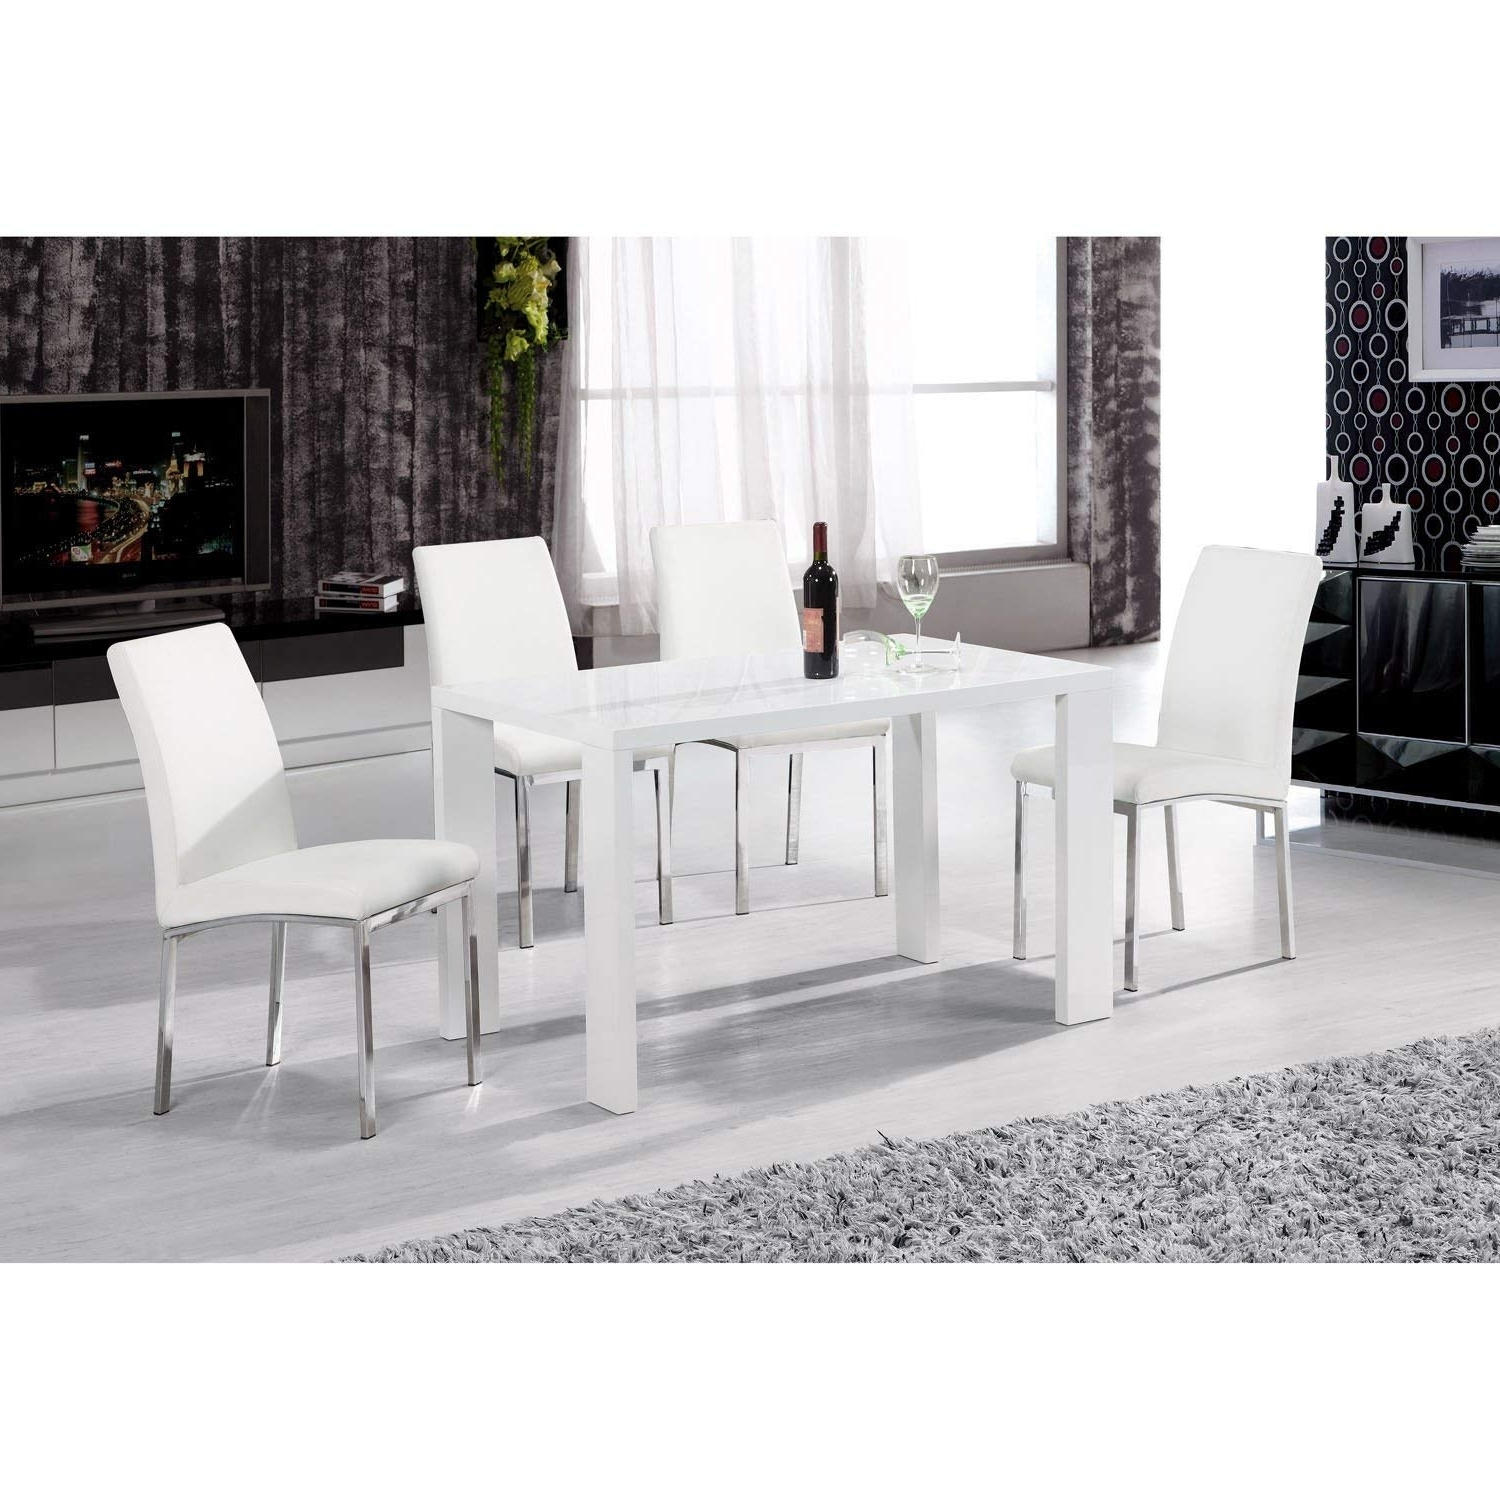 Black Gloss Dining Furniture Within Newest Heartlands Peru White High Gloss 130Cm Dining Table In Wood (View 8 of 25)